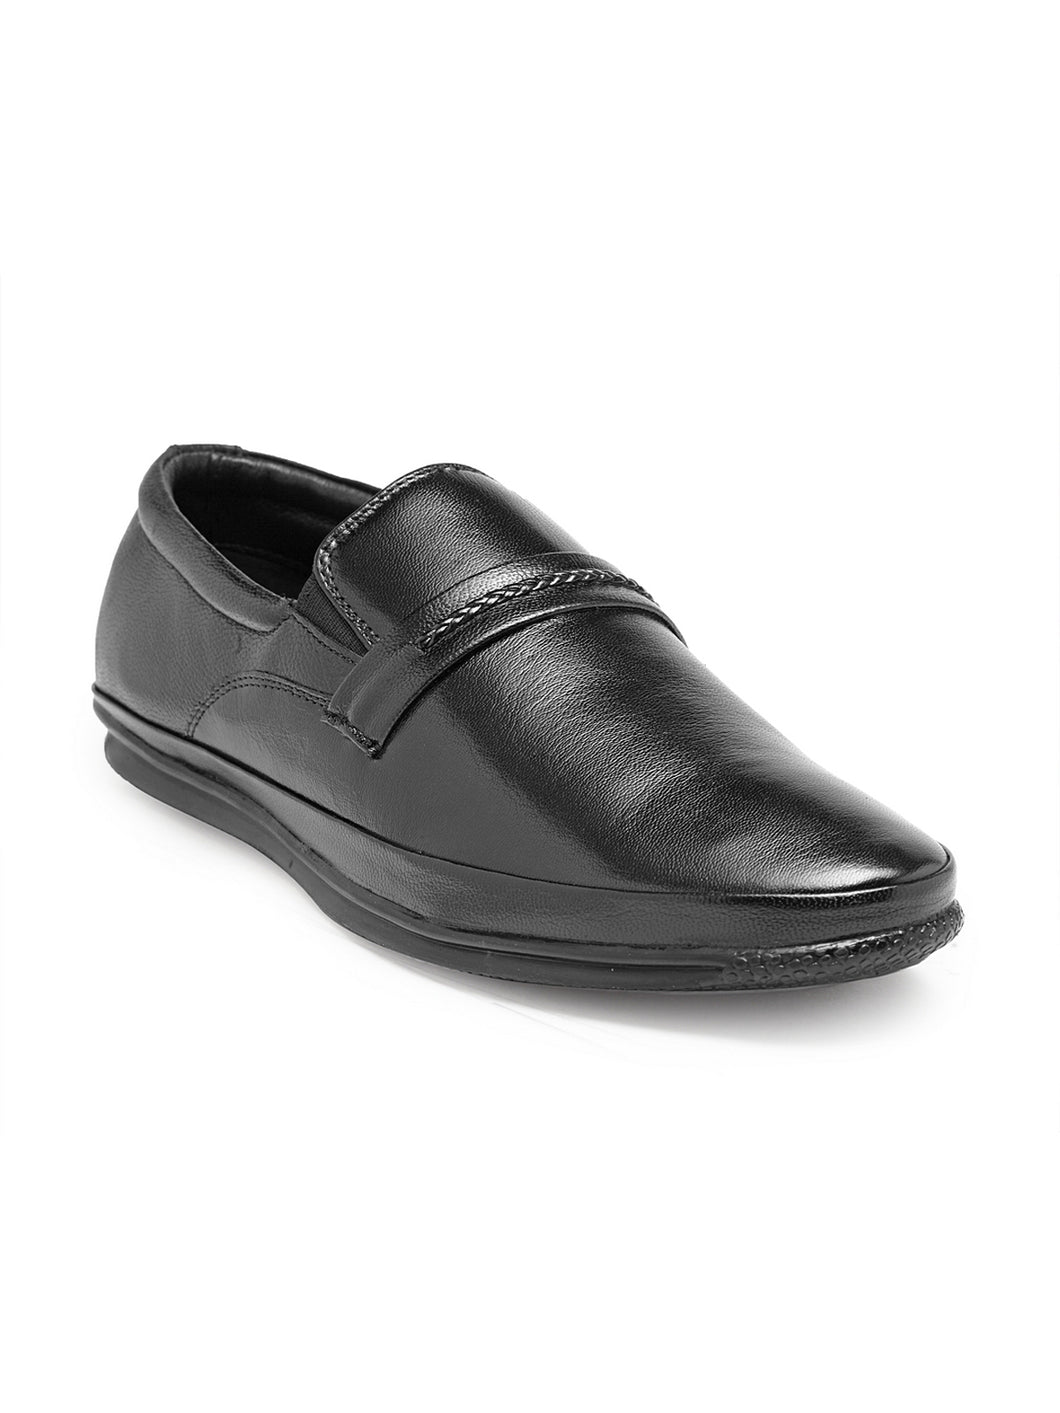 Teakwood Genuine Leather Black Slip-On Shoes